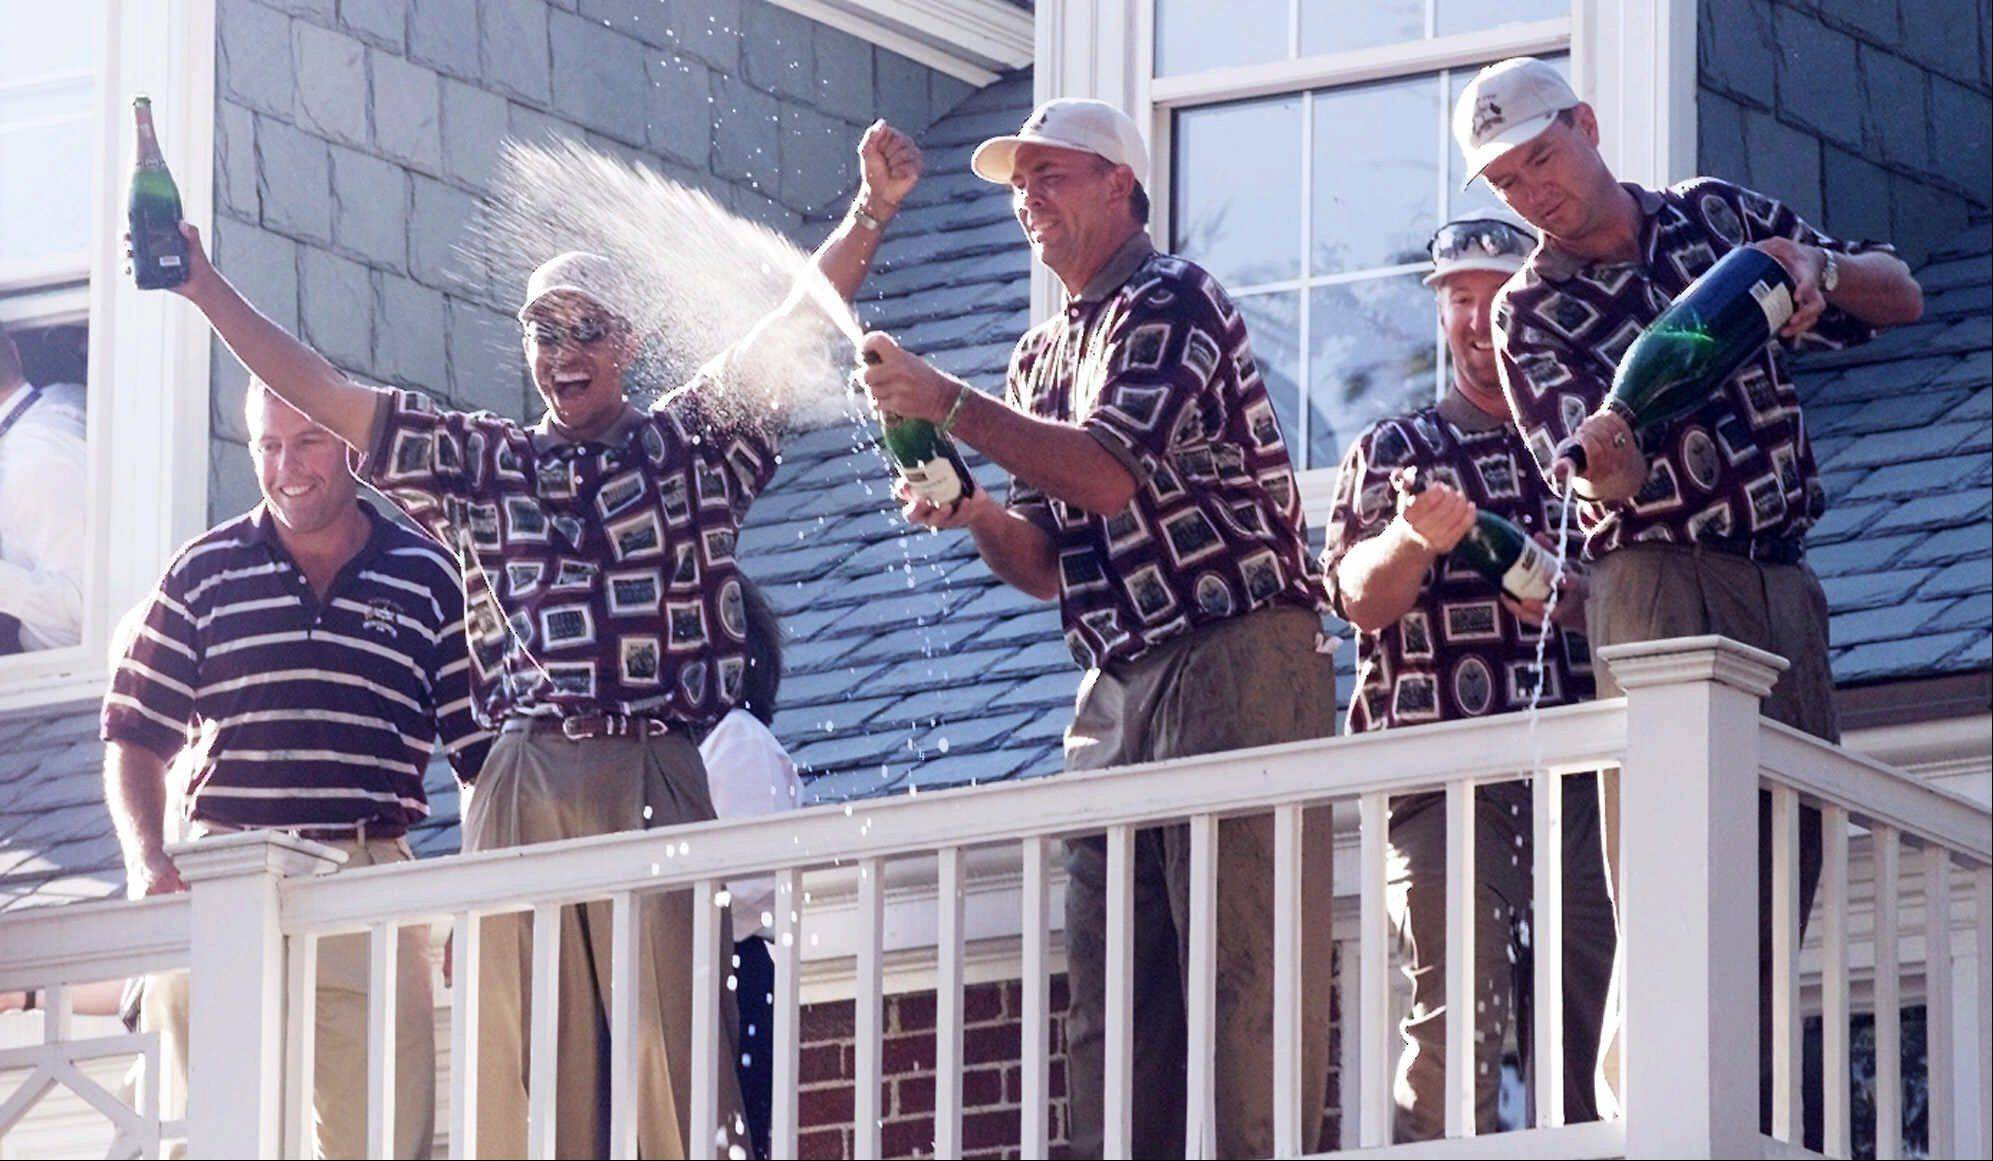 U.S. Ryder Cup team members sprays champagne on the crowd below the clubhouse balcony after winning the Ryder Cup Sunday, Sept. 26, 1999, at The Country Club in Brookline, Mass. The Americans were criticized for excessive celebration in reaction of their 1999 victory.